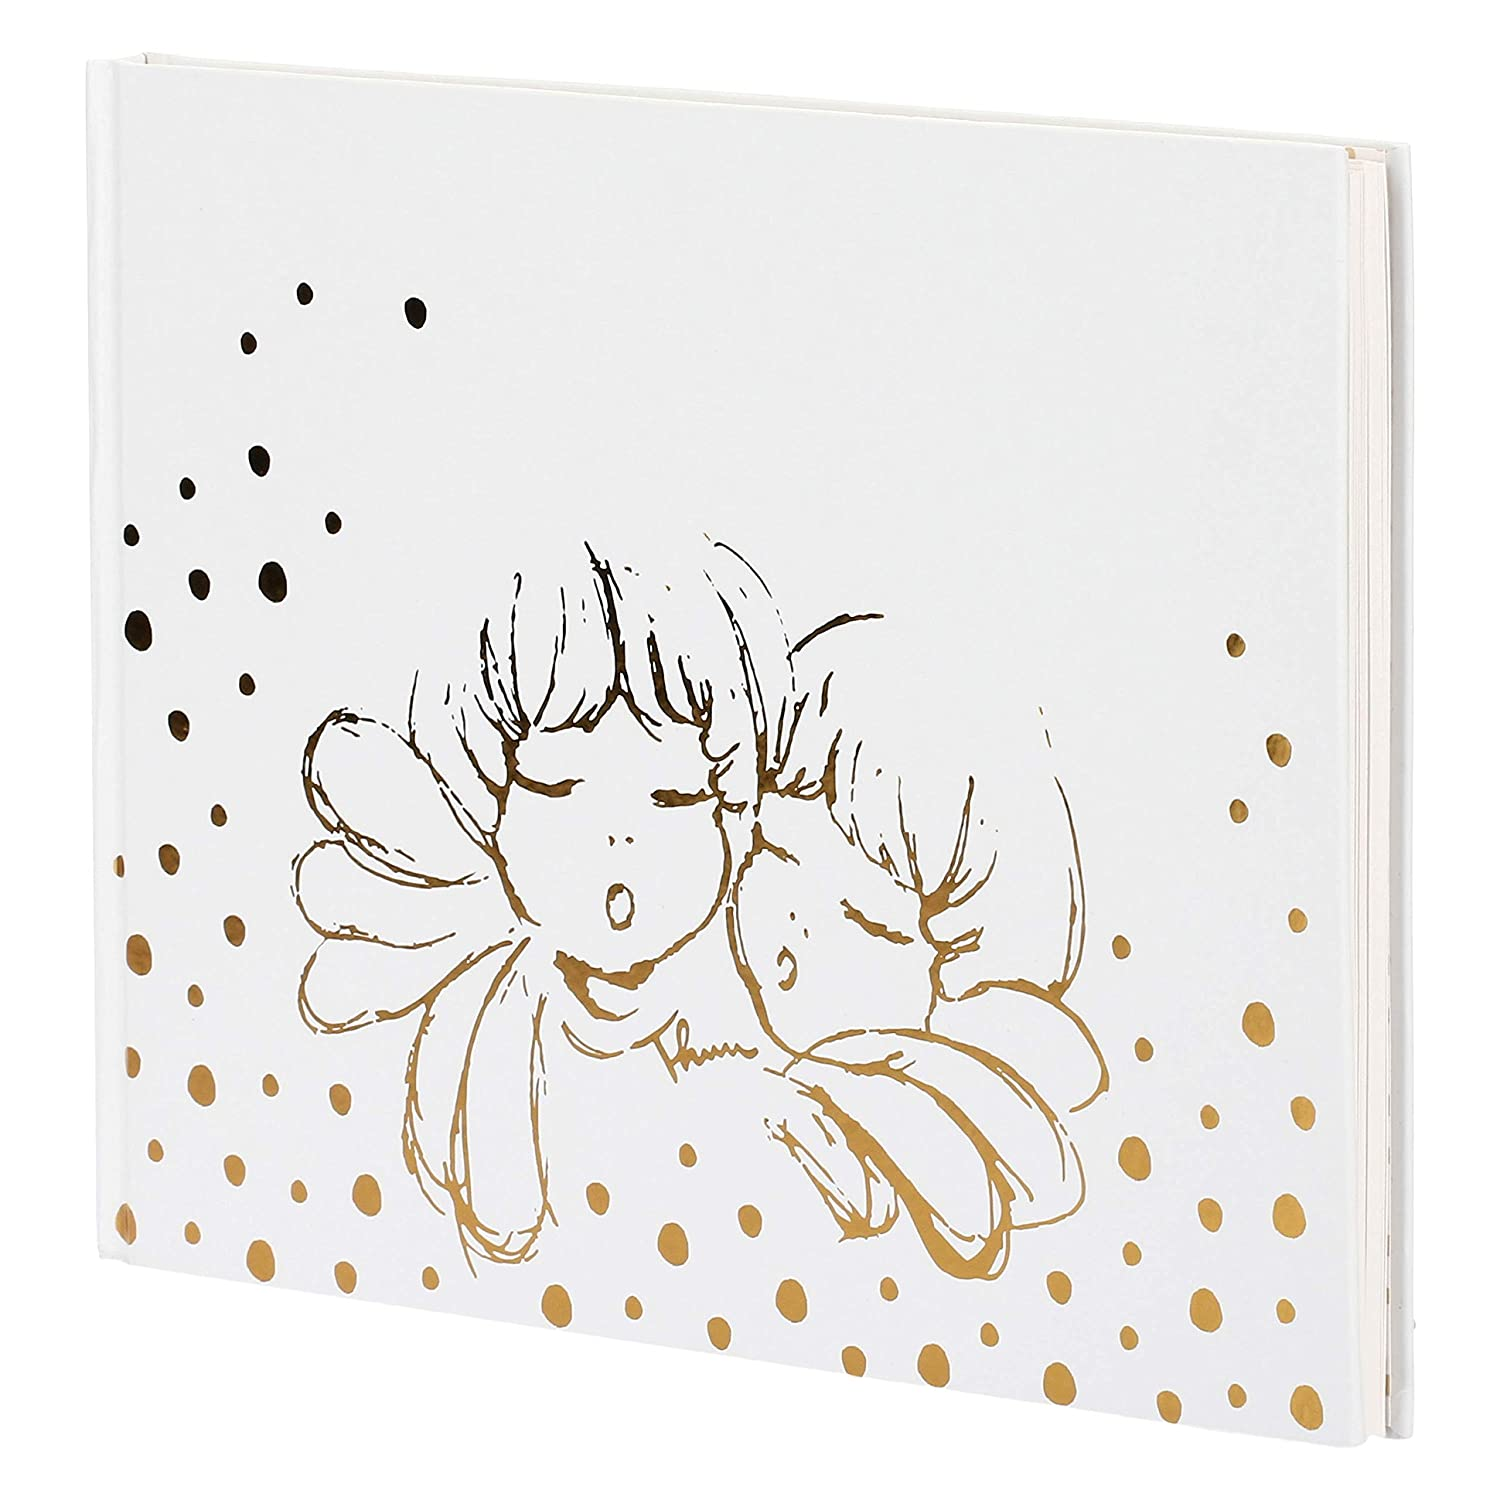 THUN ® - Album - quaderno dei ricordi - Linea Angel Gold - con Stickers Ferma Foto - Carta - 30 x 21,5 cm